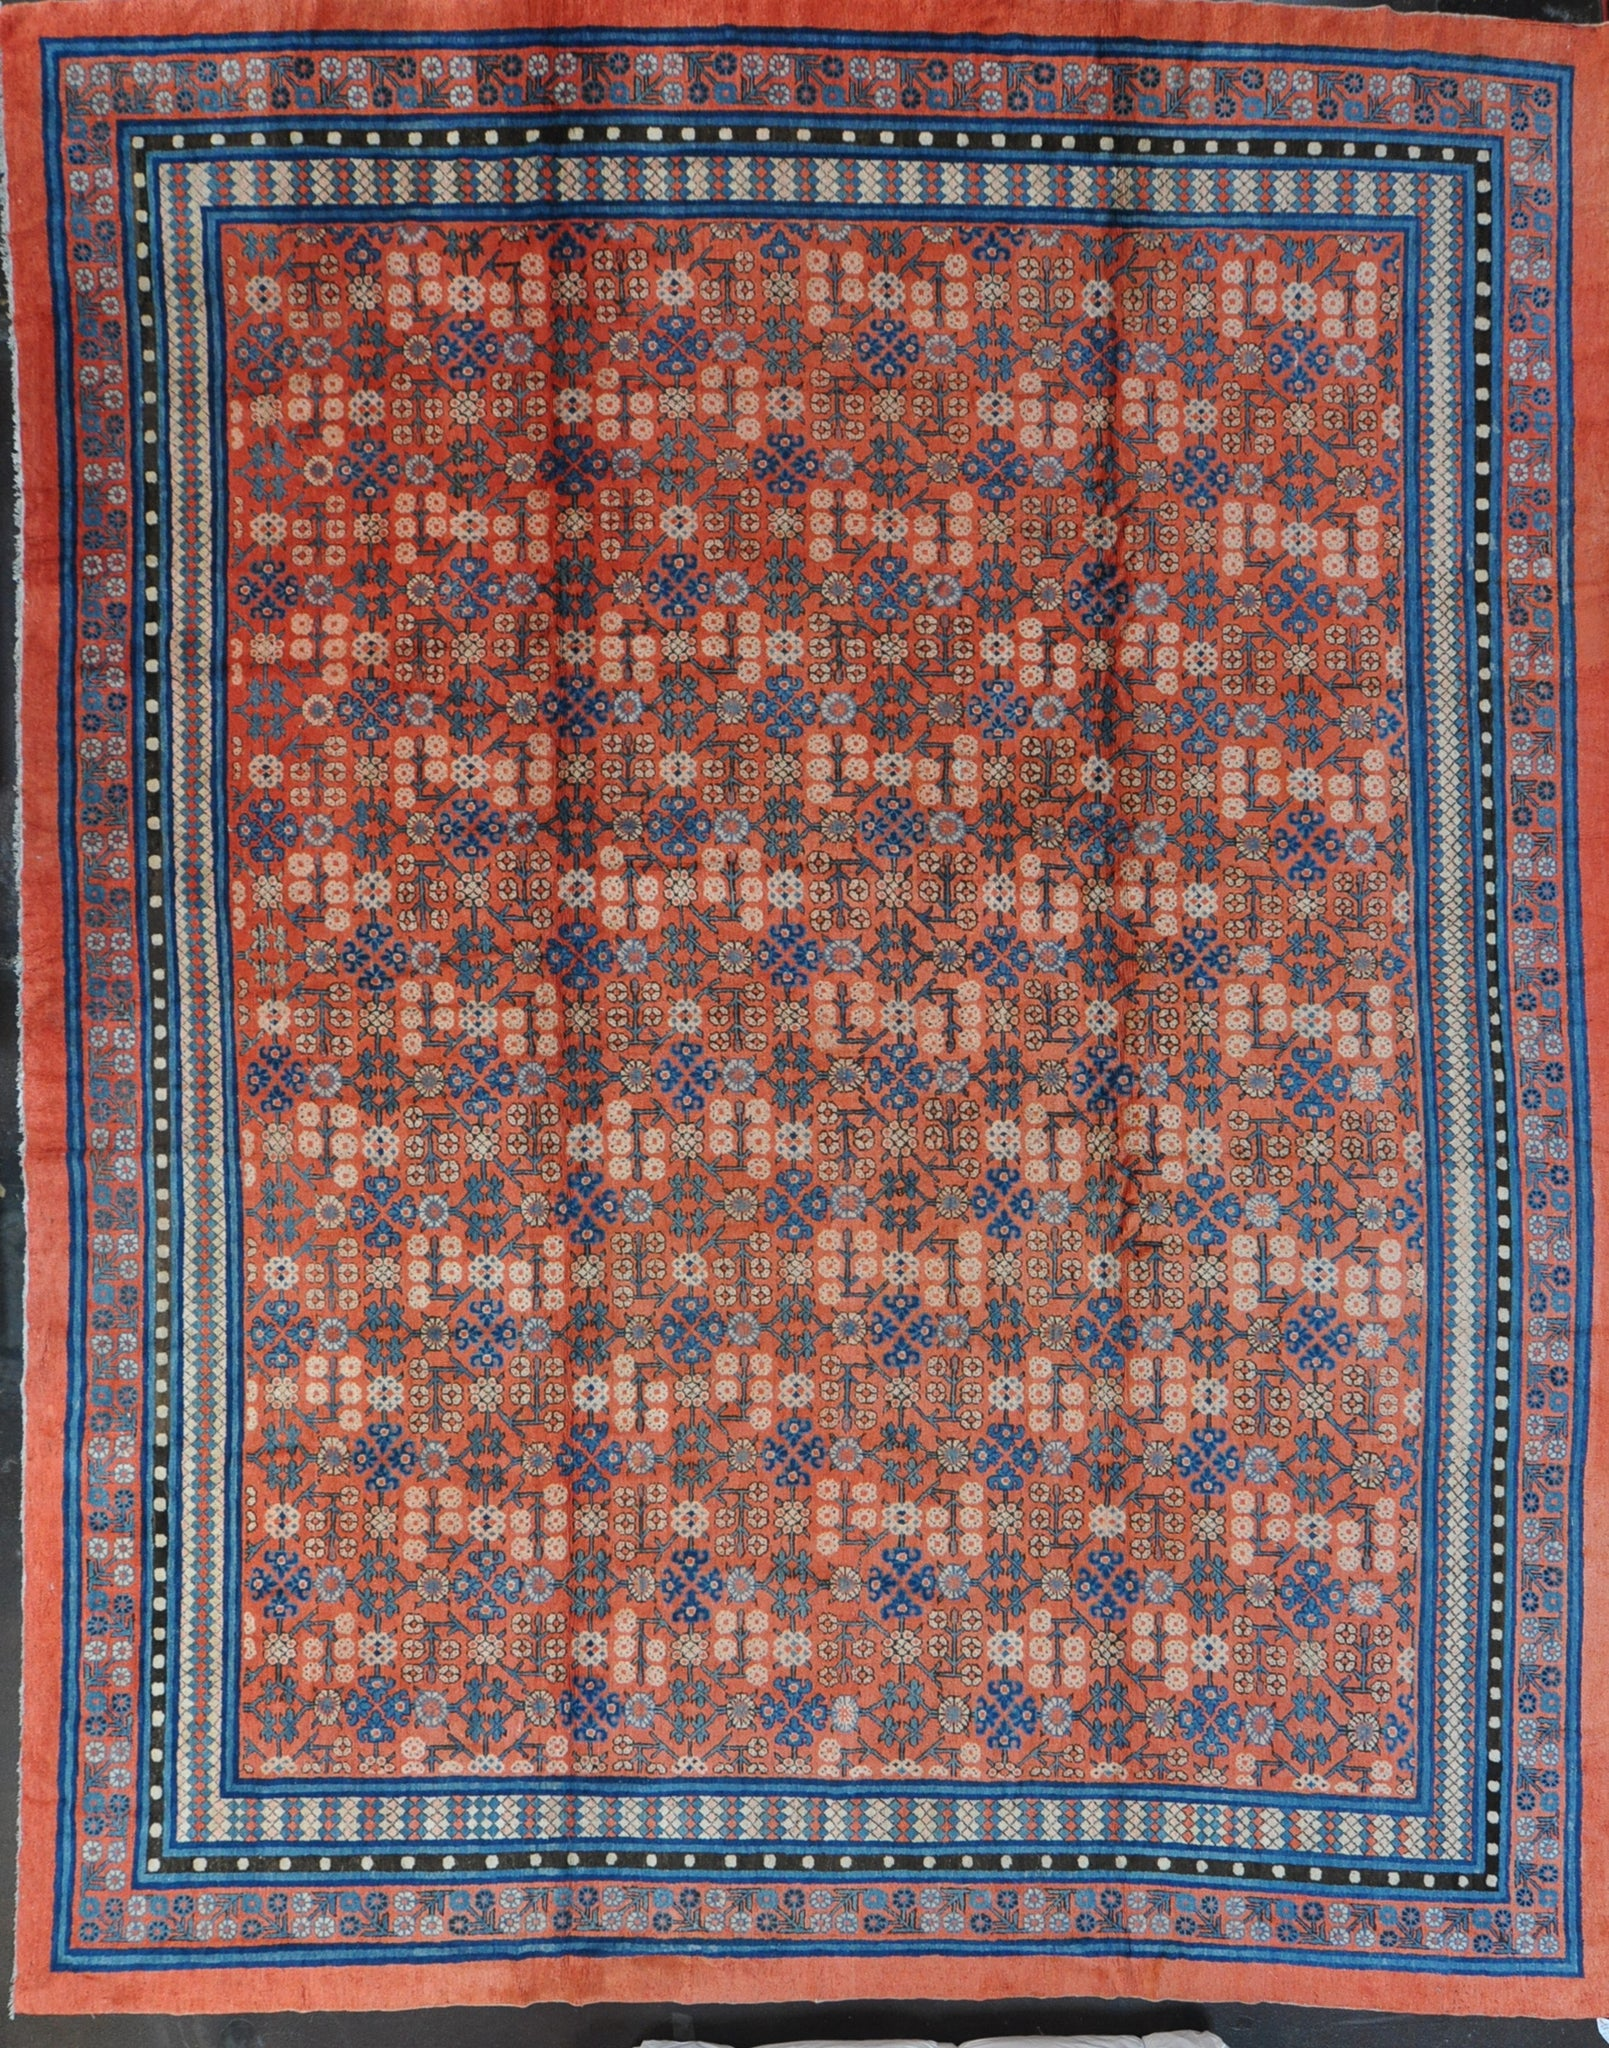 12.0x15.01 Antique khotan #38520